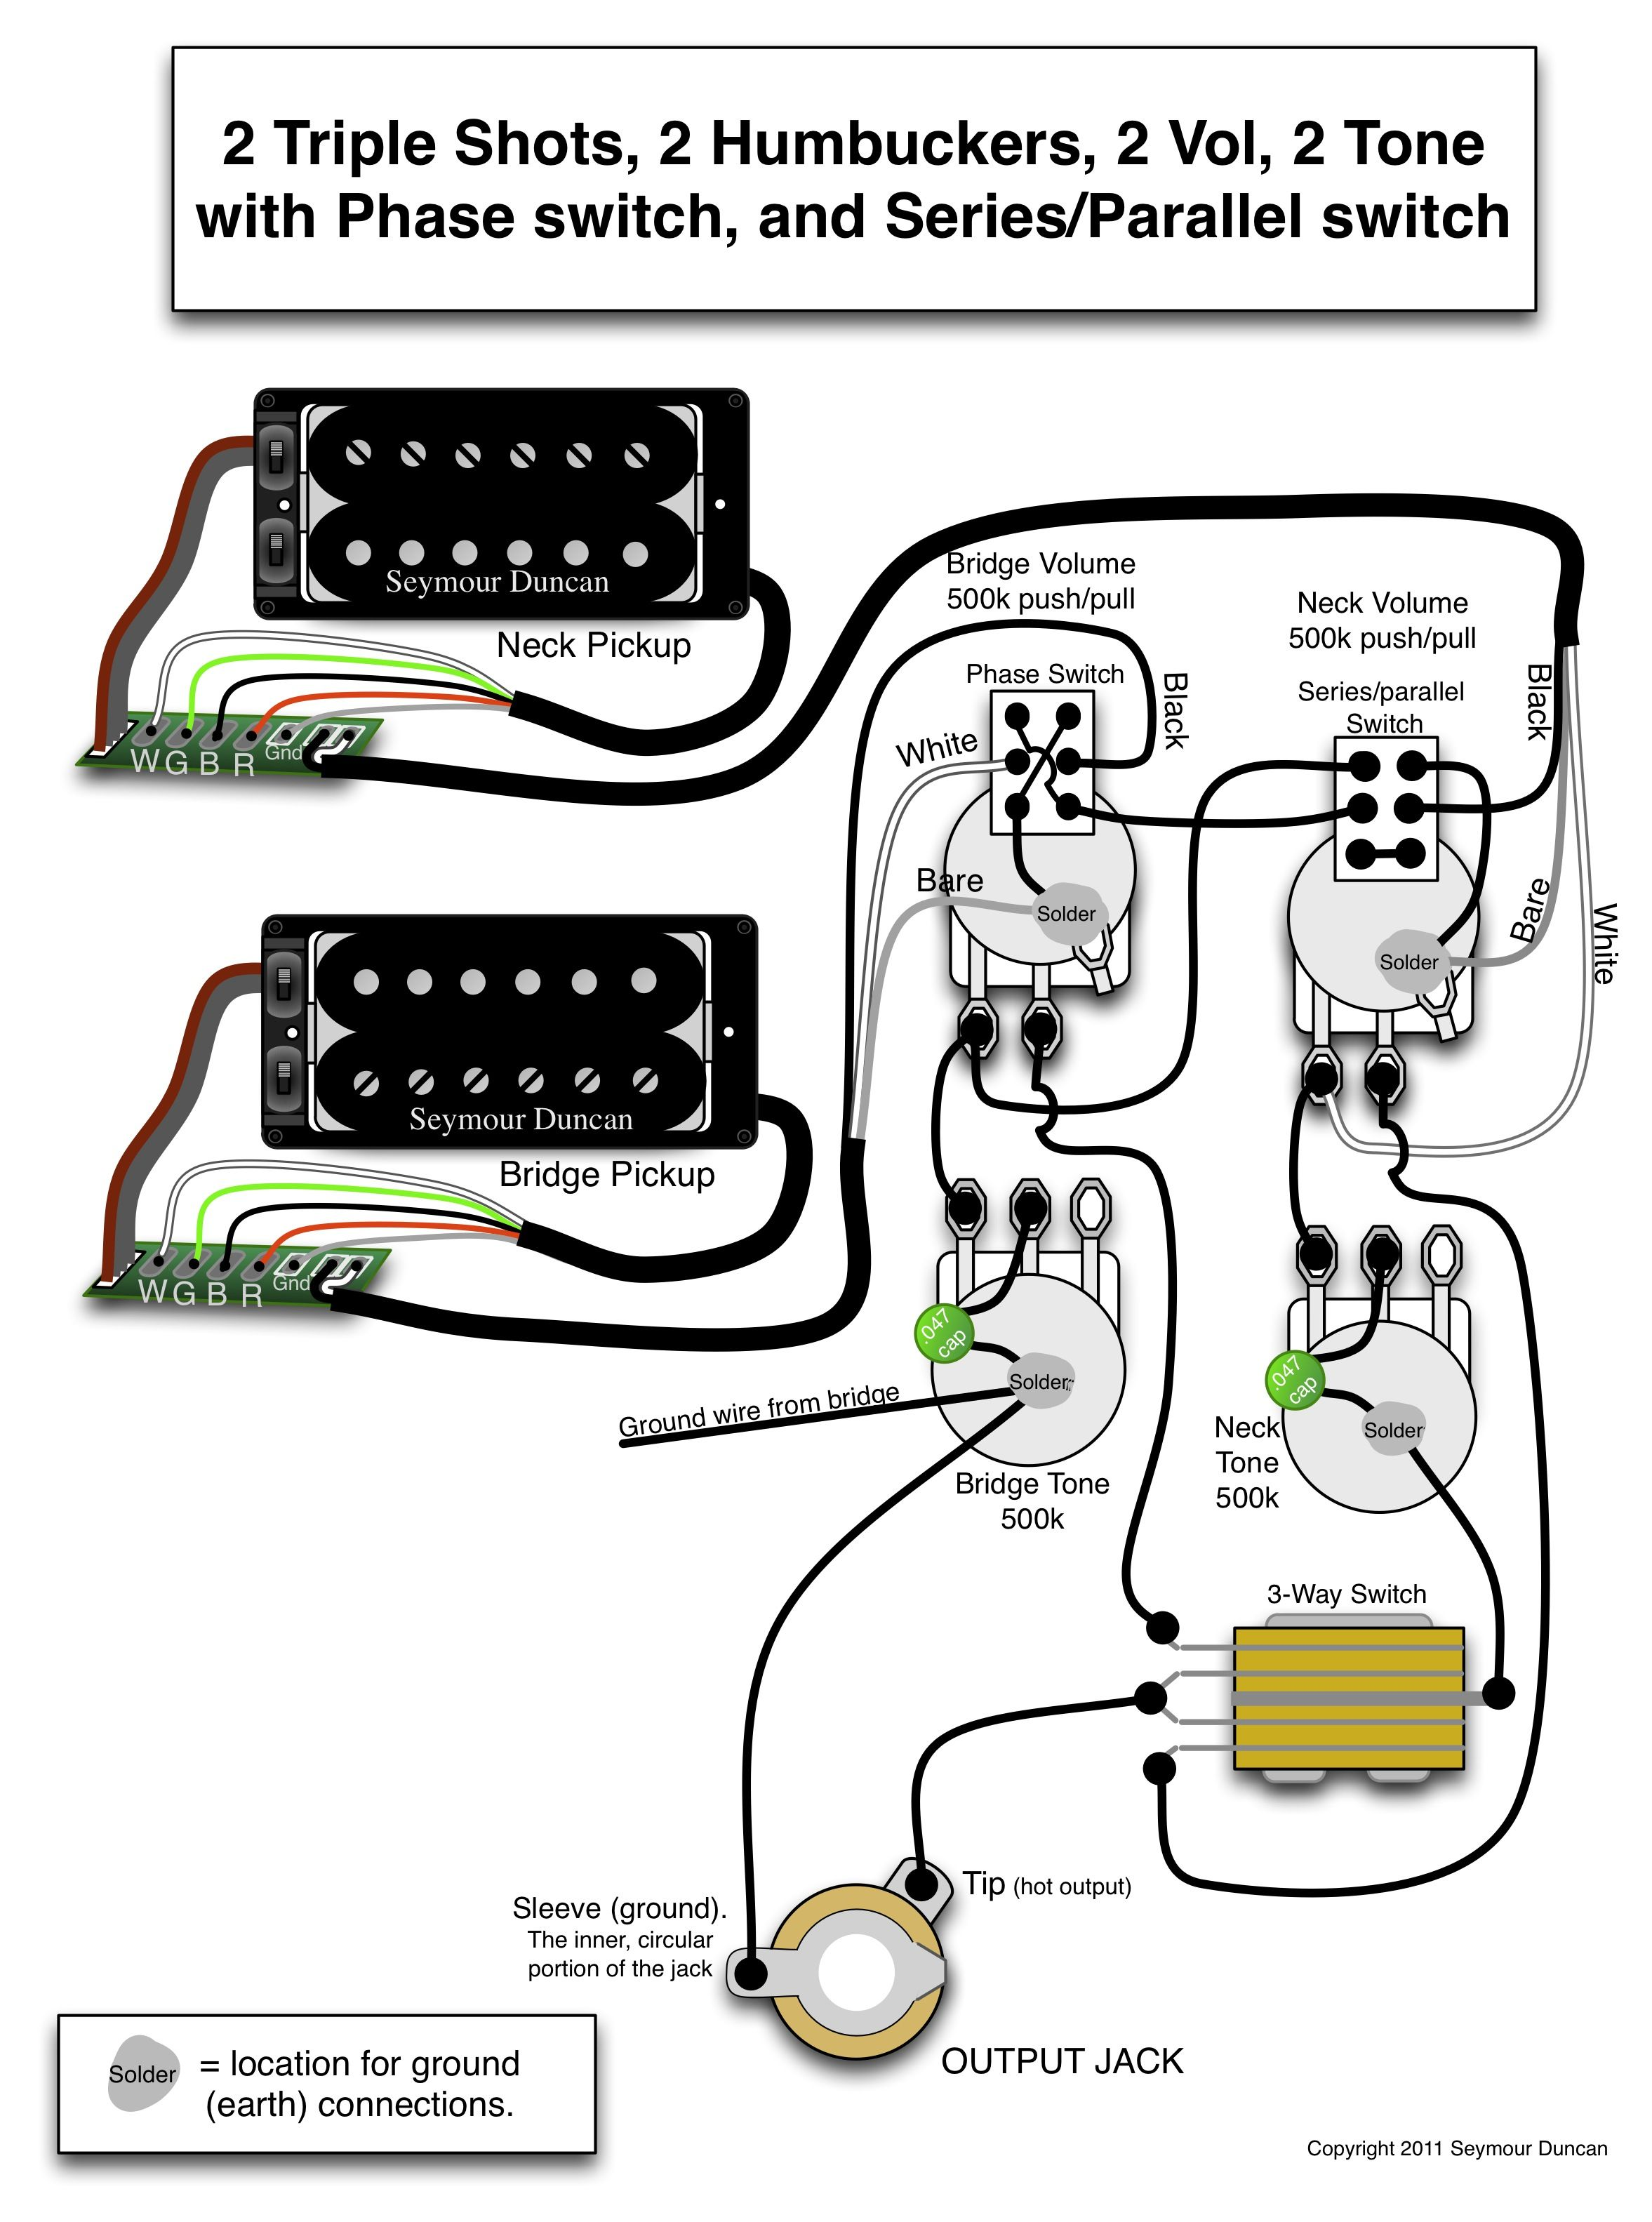 14dc4408abcf3c075a00cd280c1ea7ec seymour duncan wiring diagram 2 triple shots, 2 humbuckers, 2 vintage les paul wiring diagram at bayanpartner.co